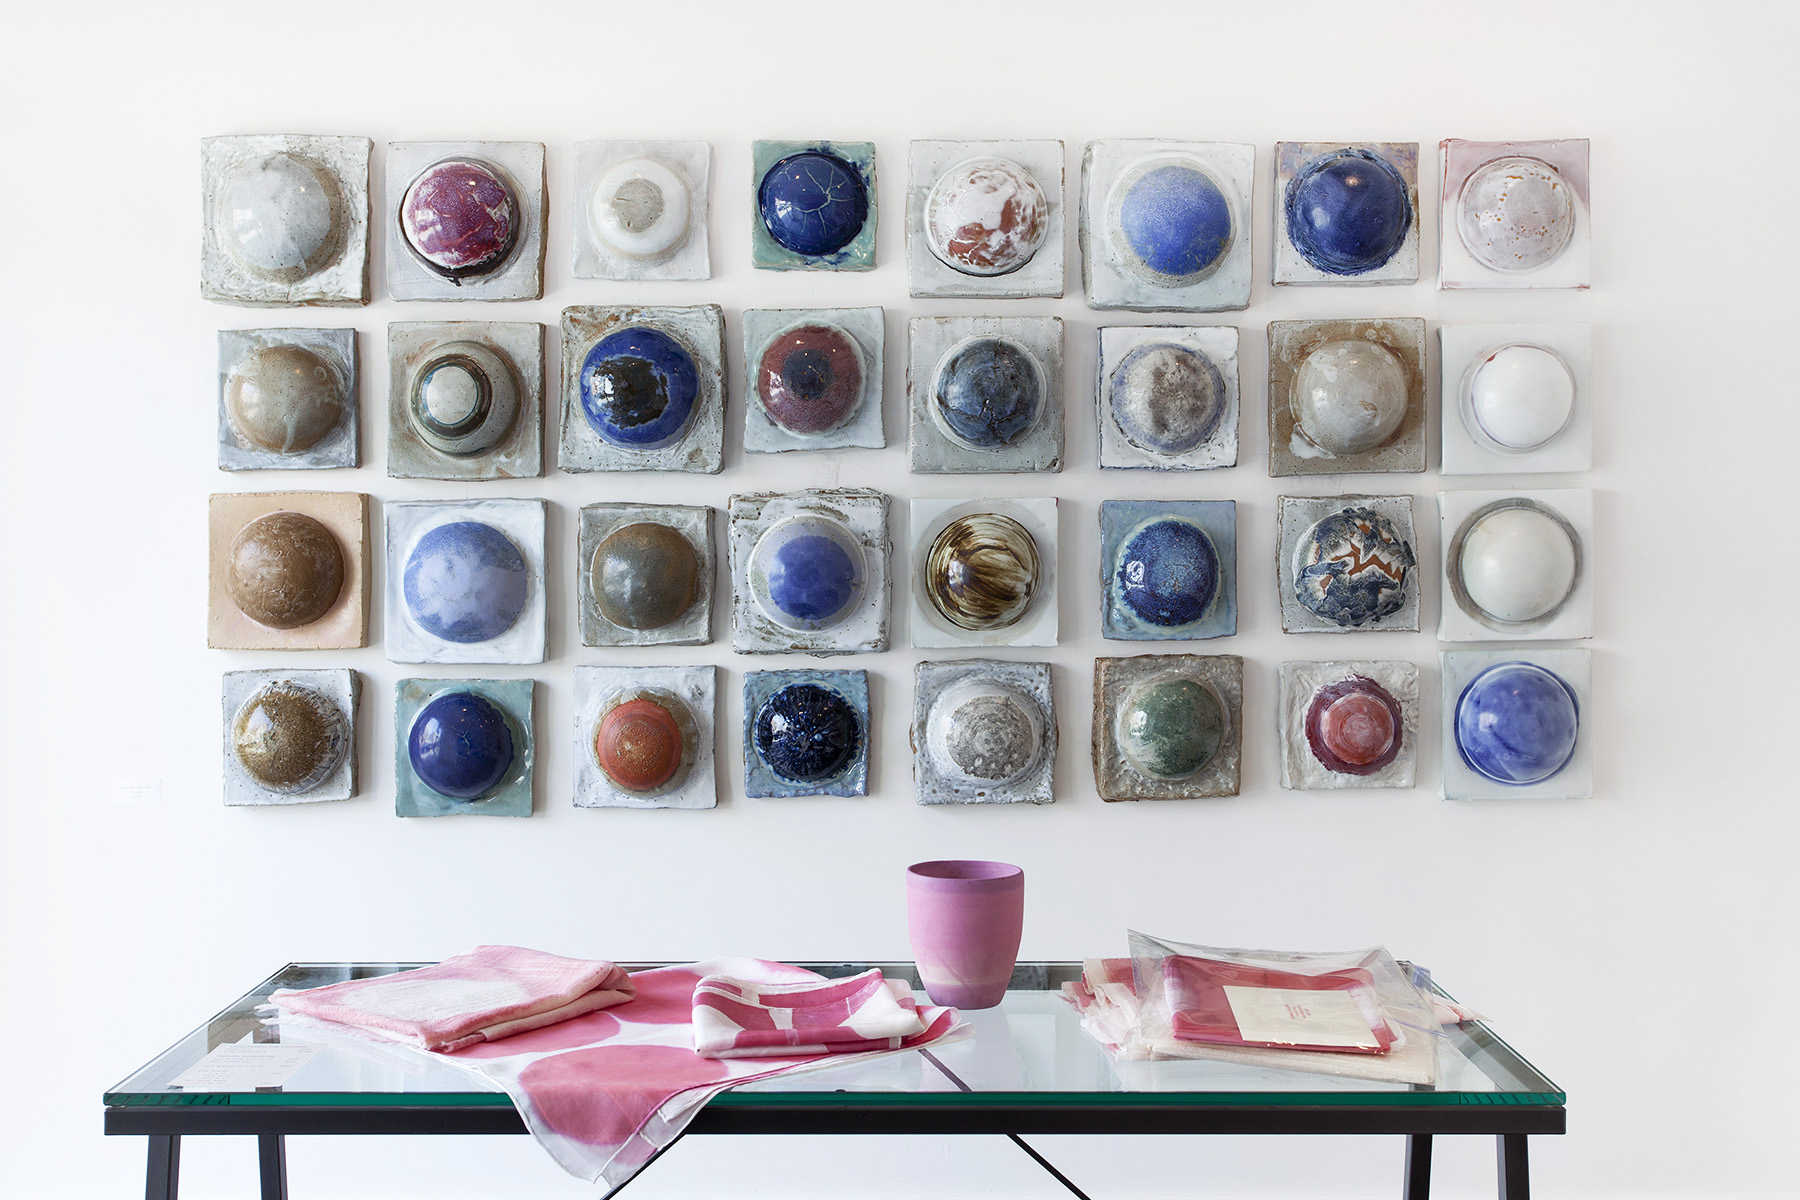 Eastman Tiles and Cochineal Collaboration 2015